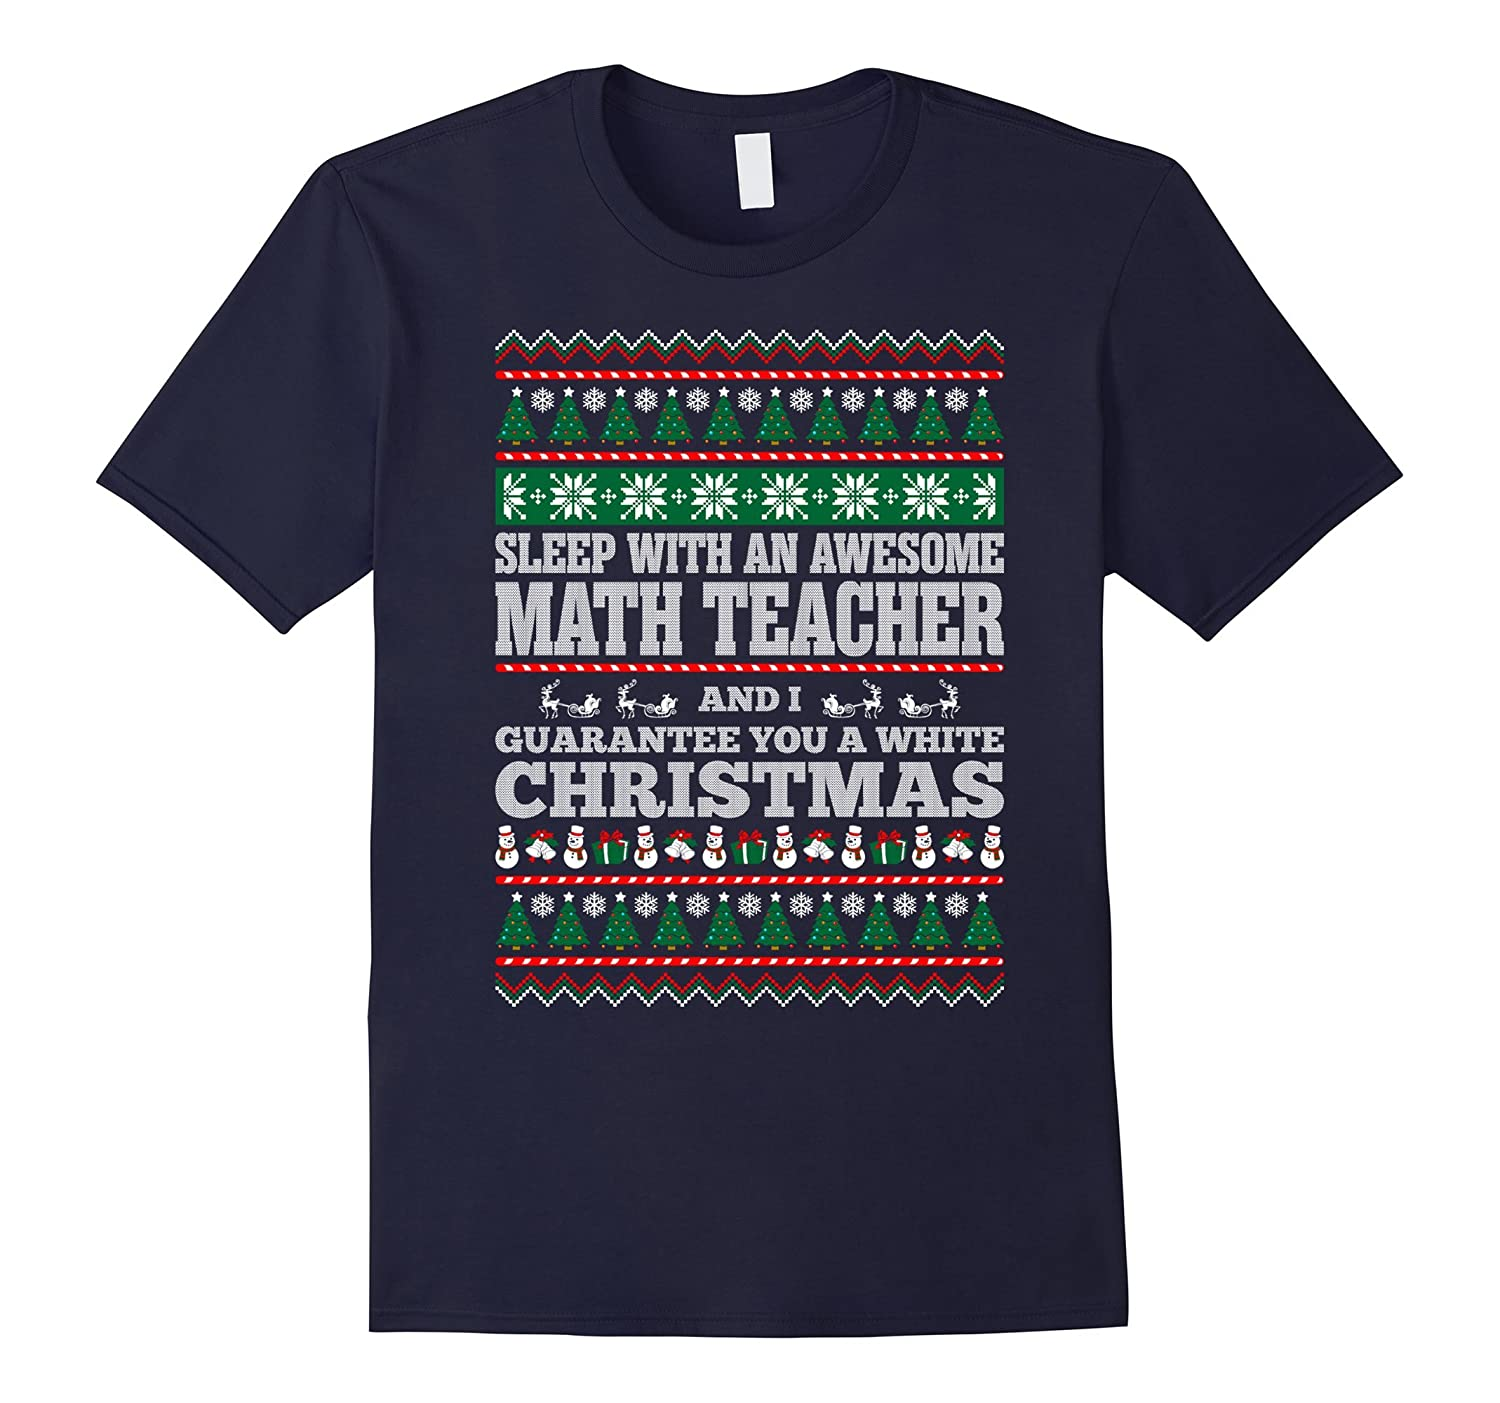 Sleep With Math Teacher Guarantee White Christmas T-shirt-BN